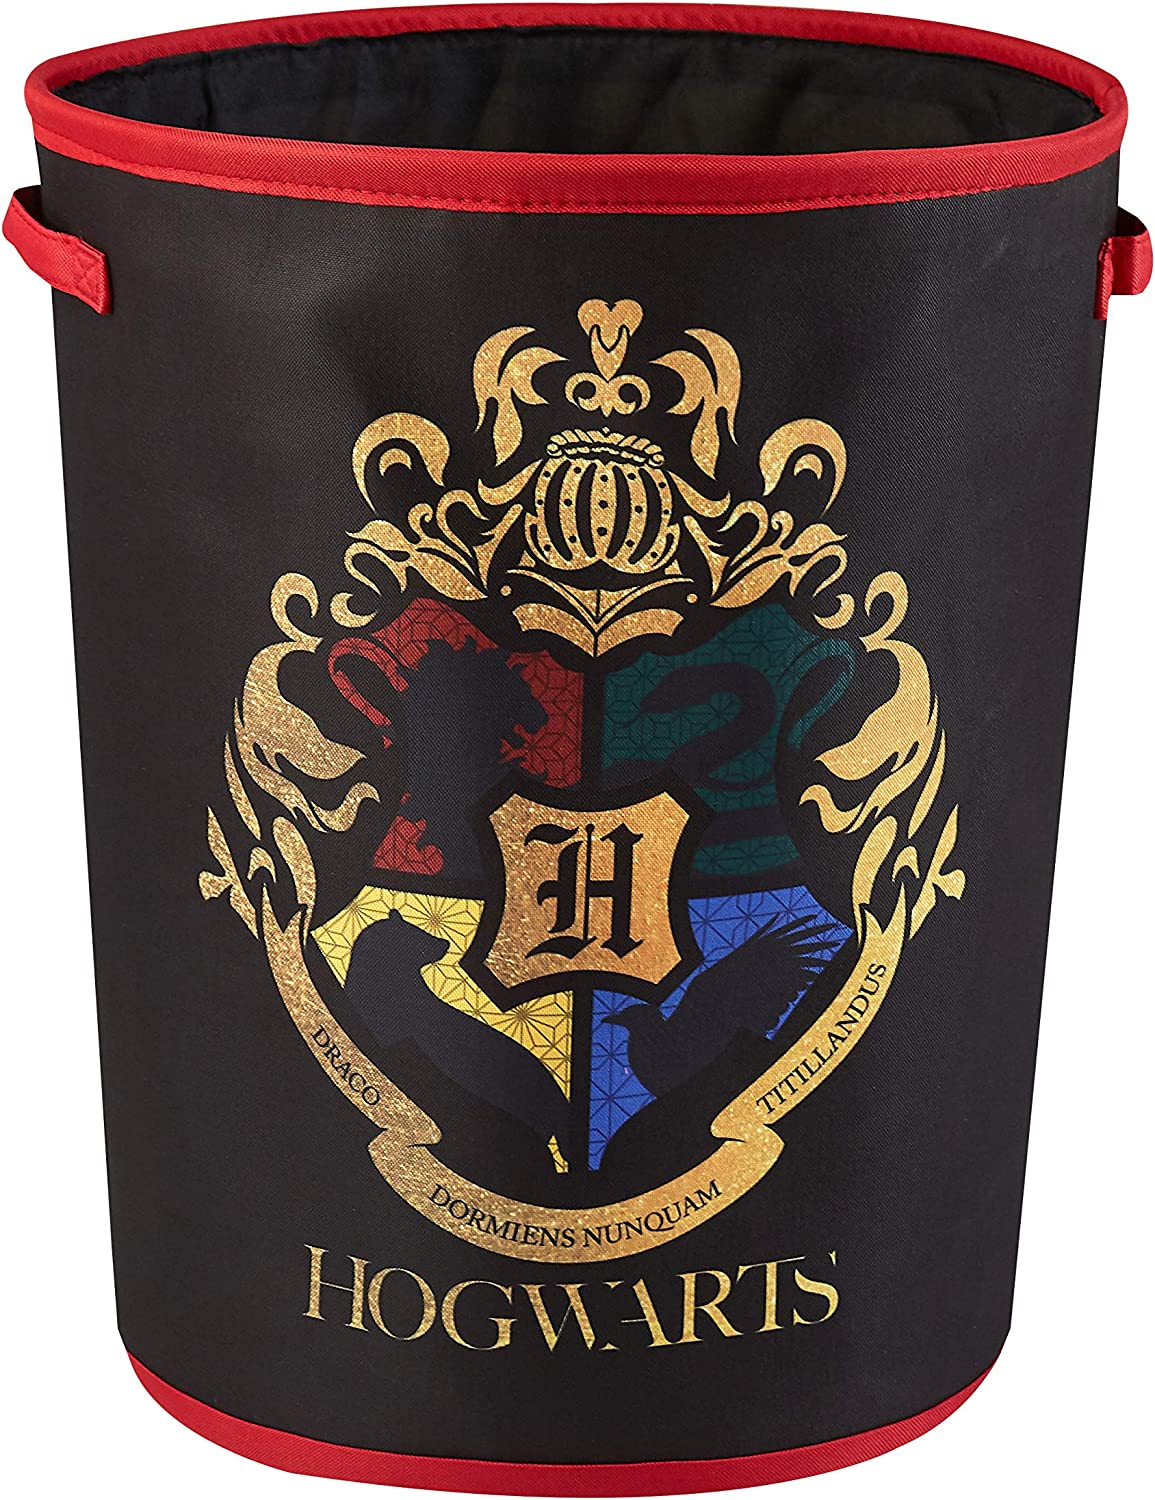 Harry Potter Circular Storage Bin with Handles, Black